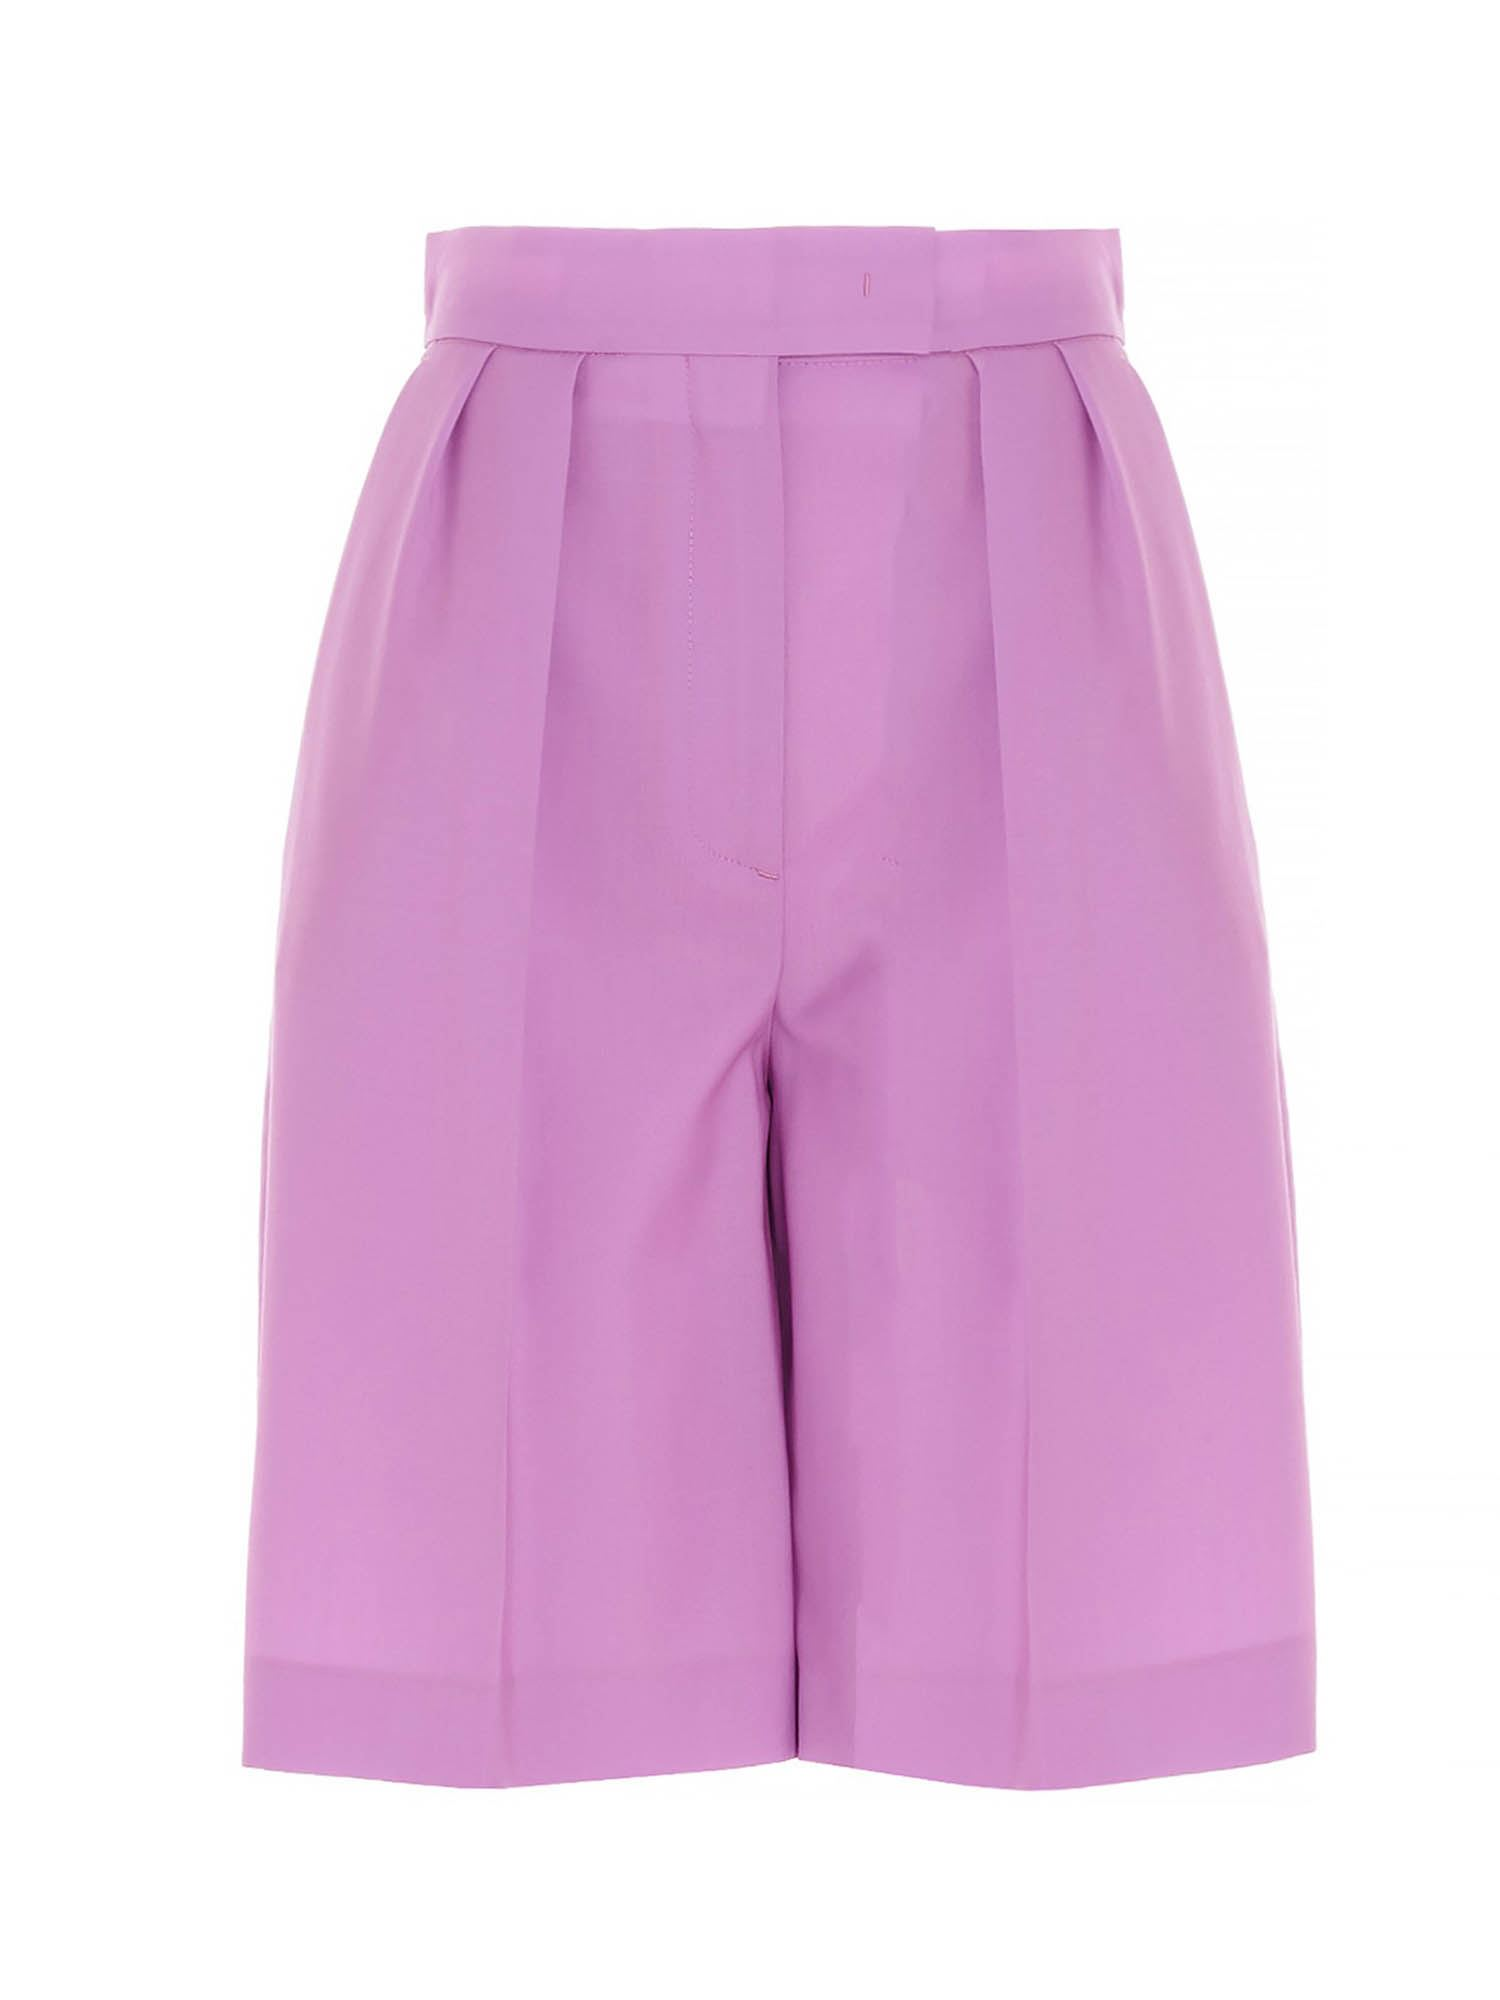 Msgm Shorts TAILORED BERMUDA SHORTS IN PINK